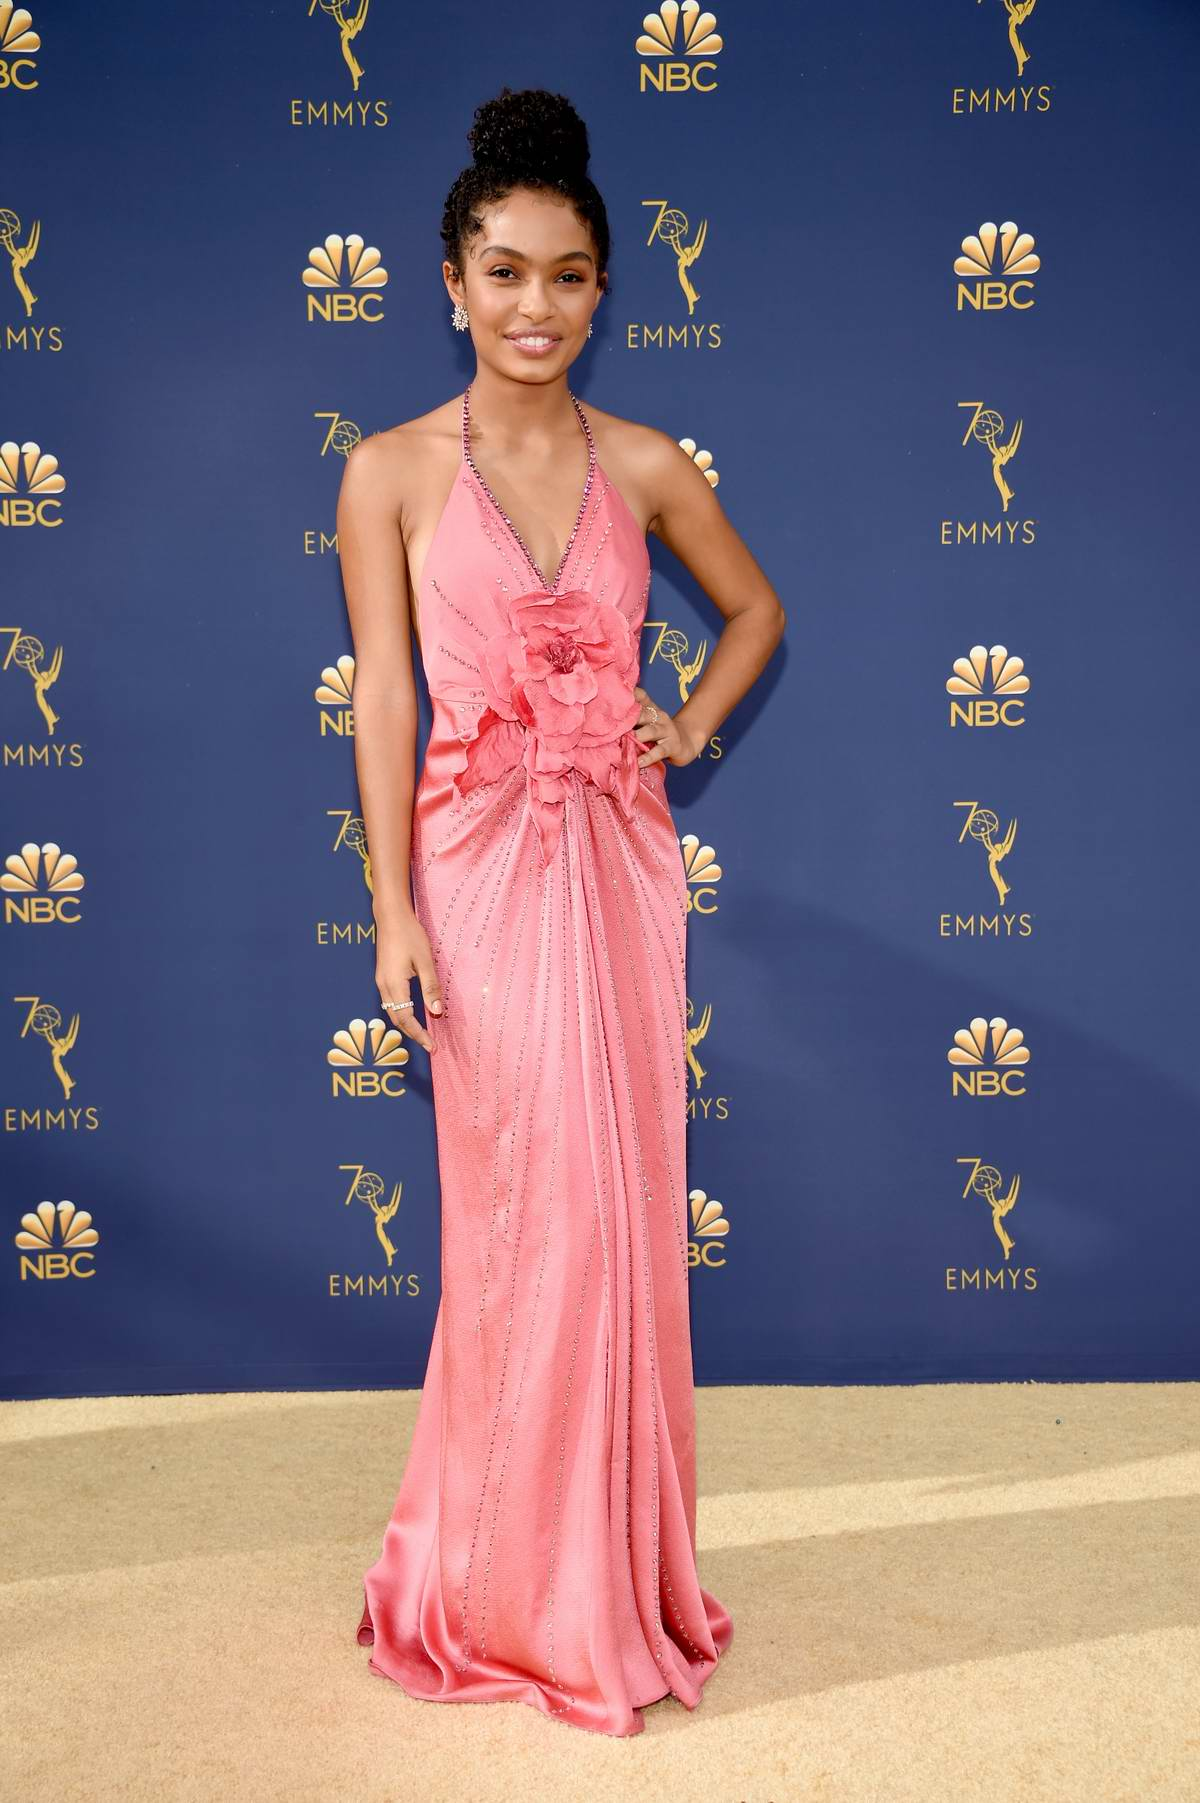 Yara Shahidi attends the 70th Primetime EMMY Awards (EMMYS 2018) at Microsoft Theater in Los Angeles